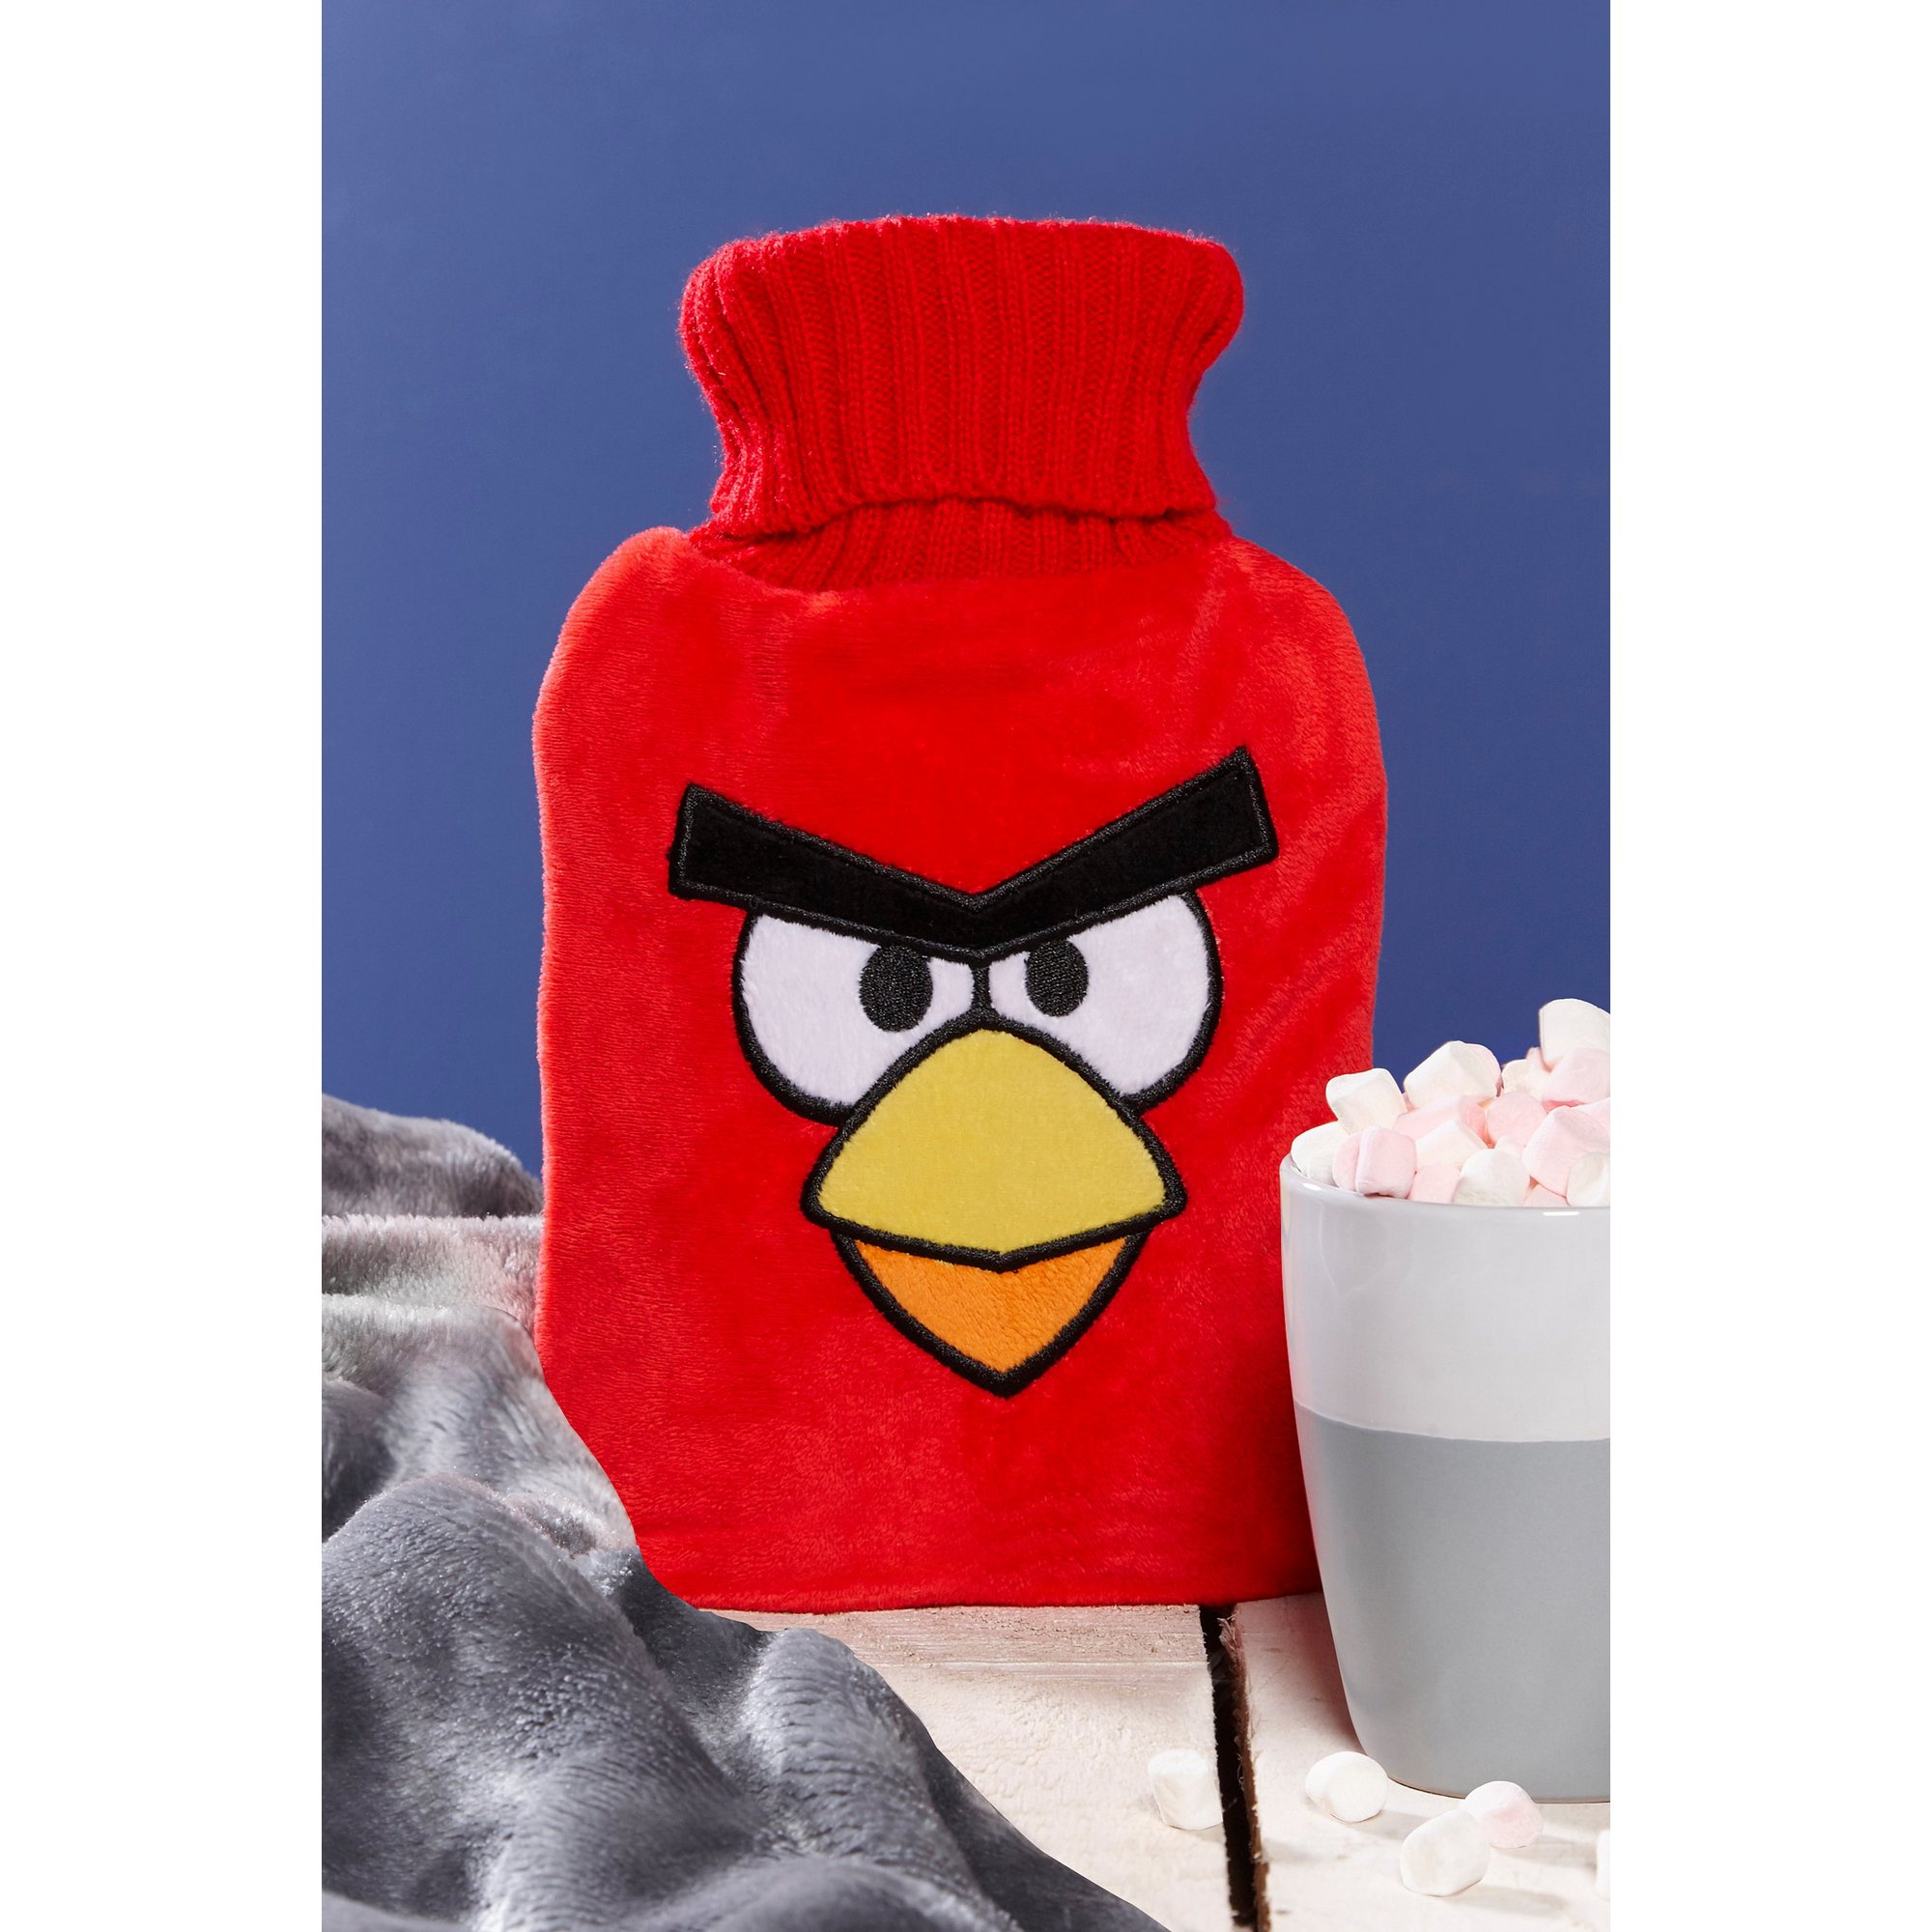 Image of Angry Birds Red Hot Water Bottle